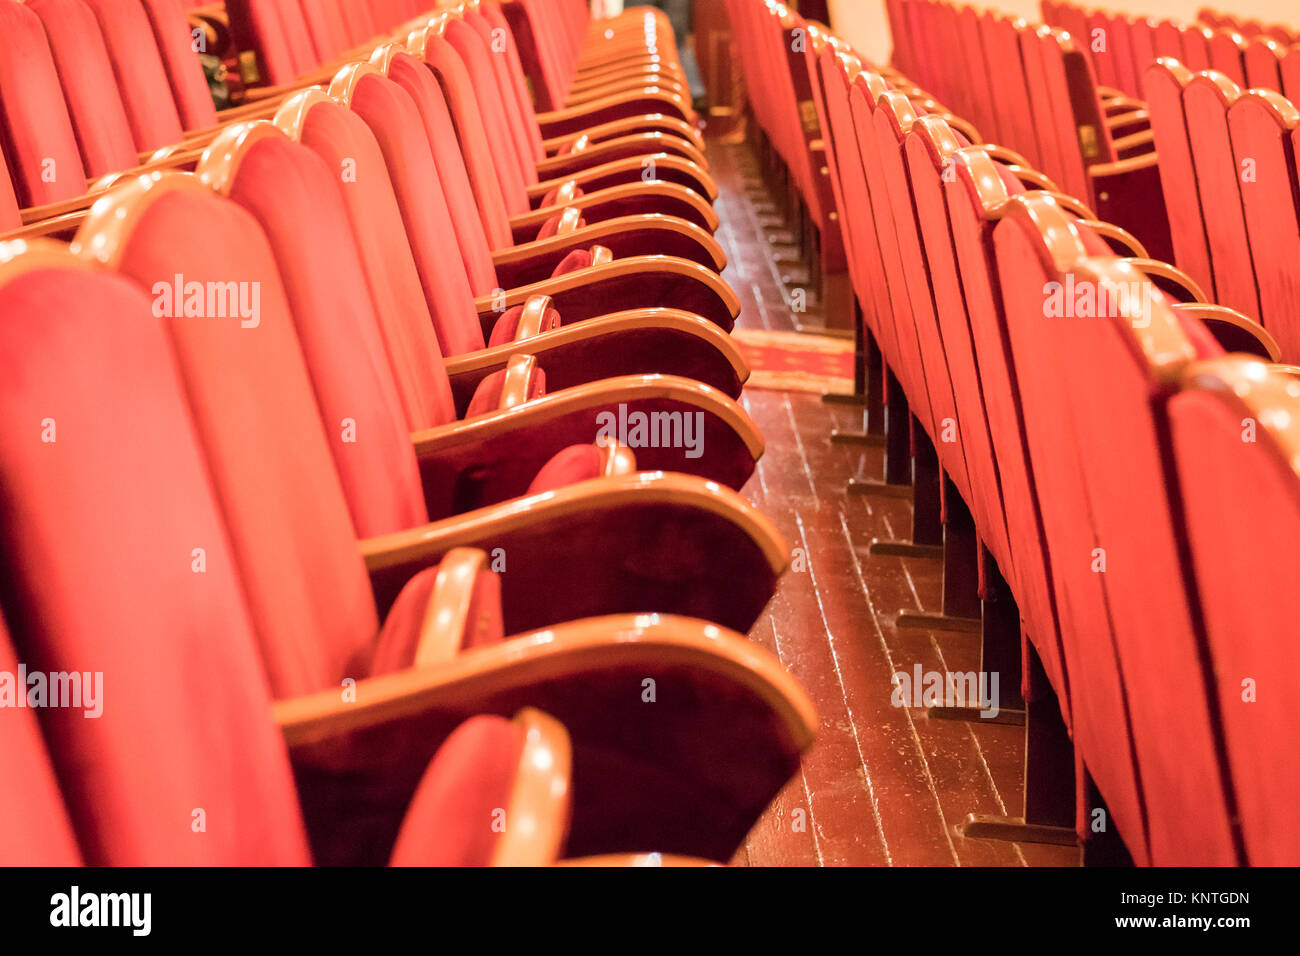 Rote Sessel Rote Sessel Im Konzertsaal Stockfoto Bild 168340865 Alamy